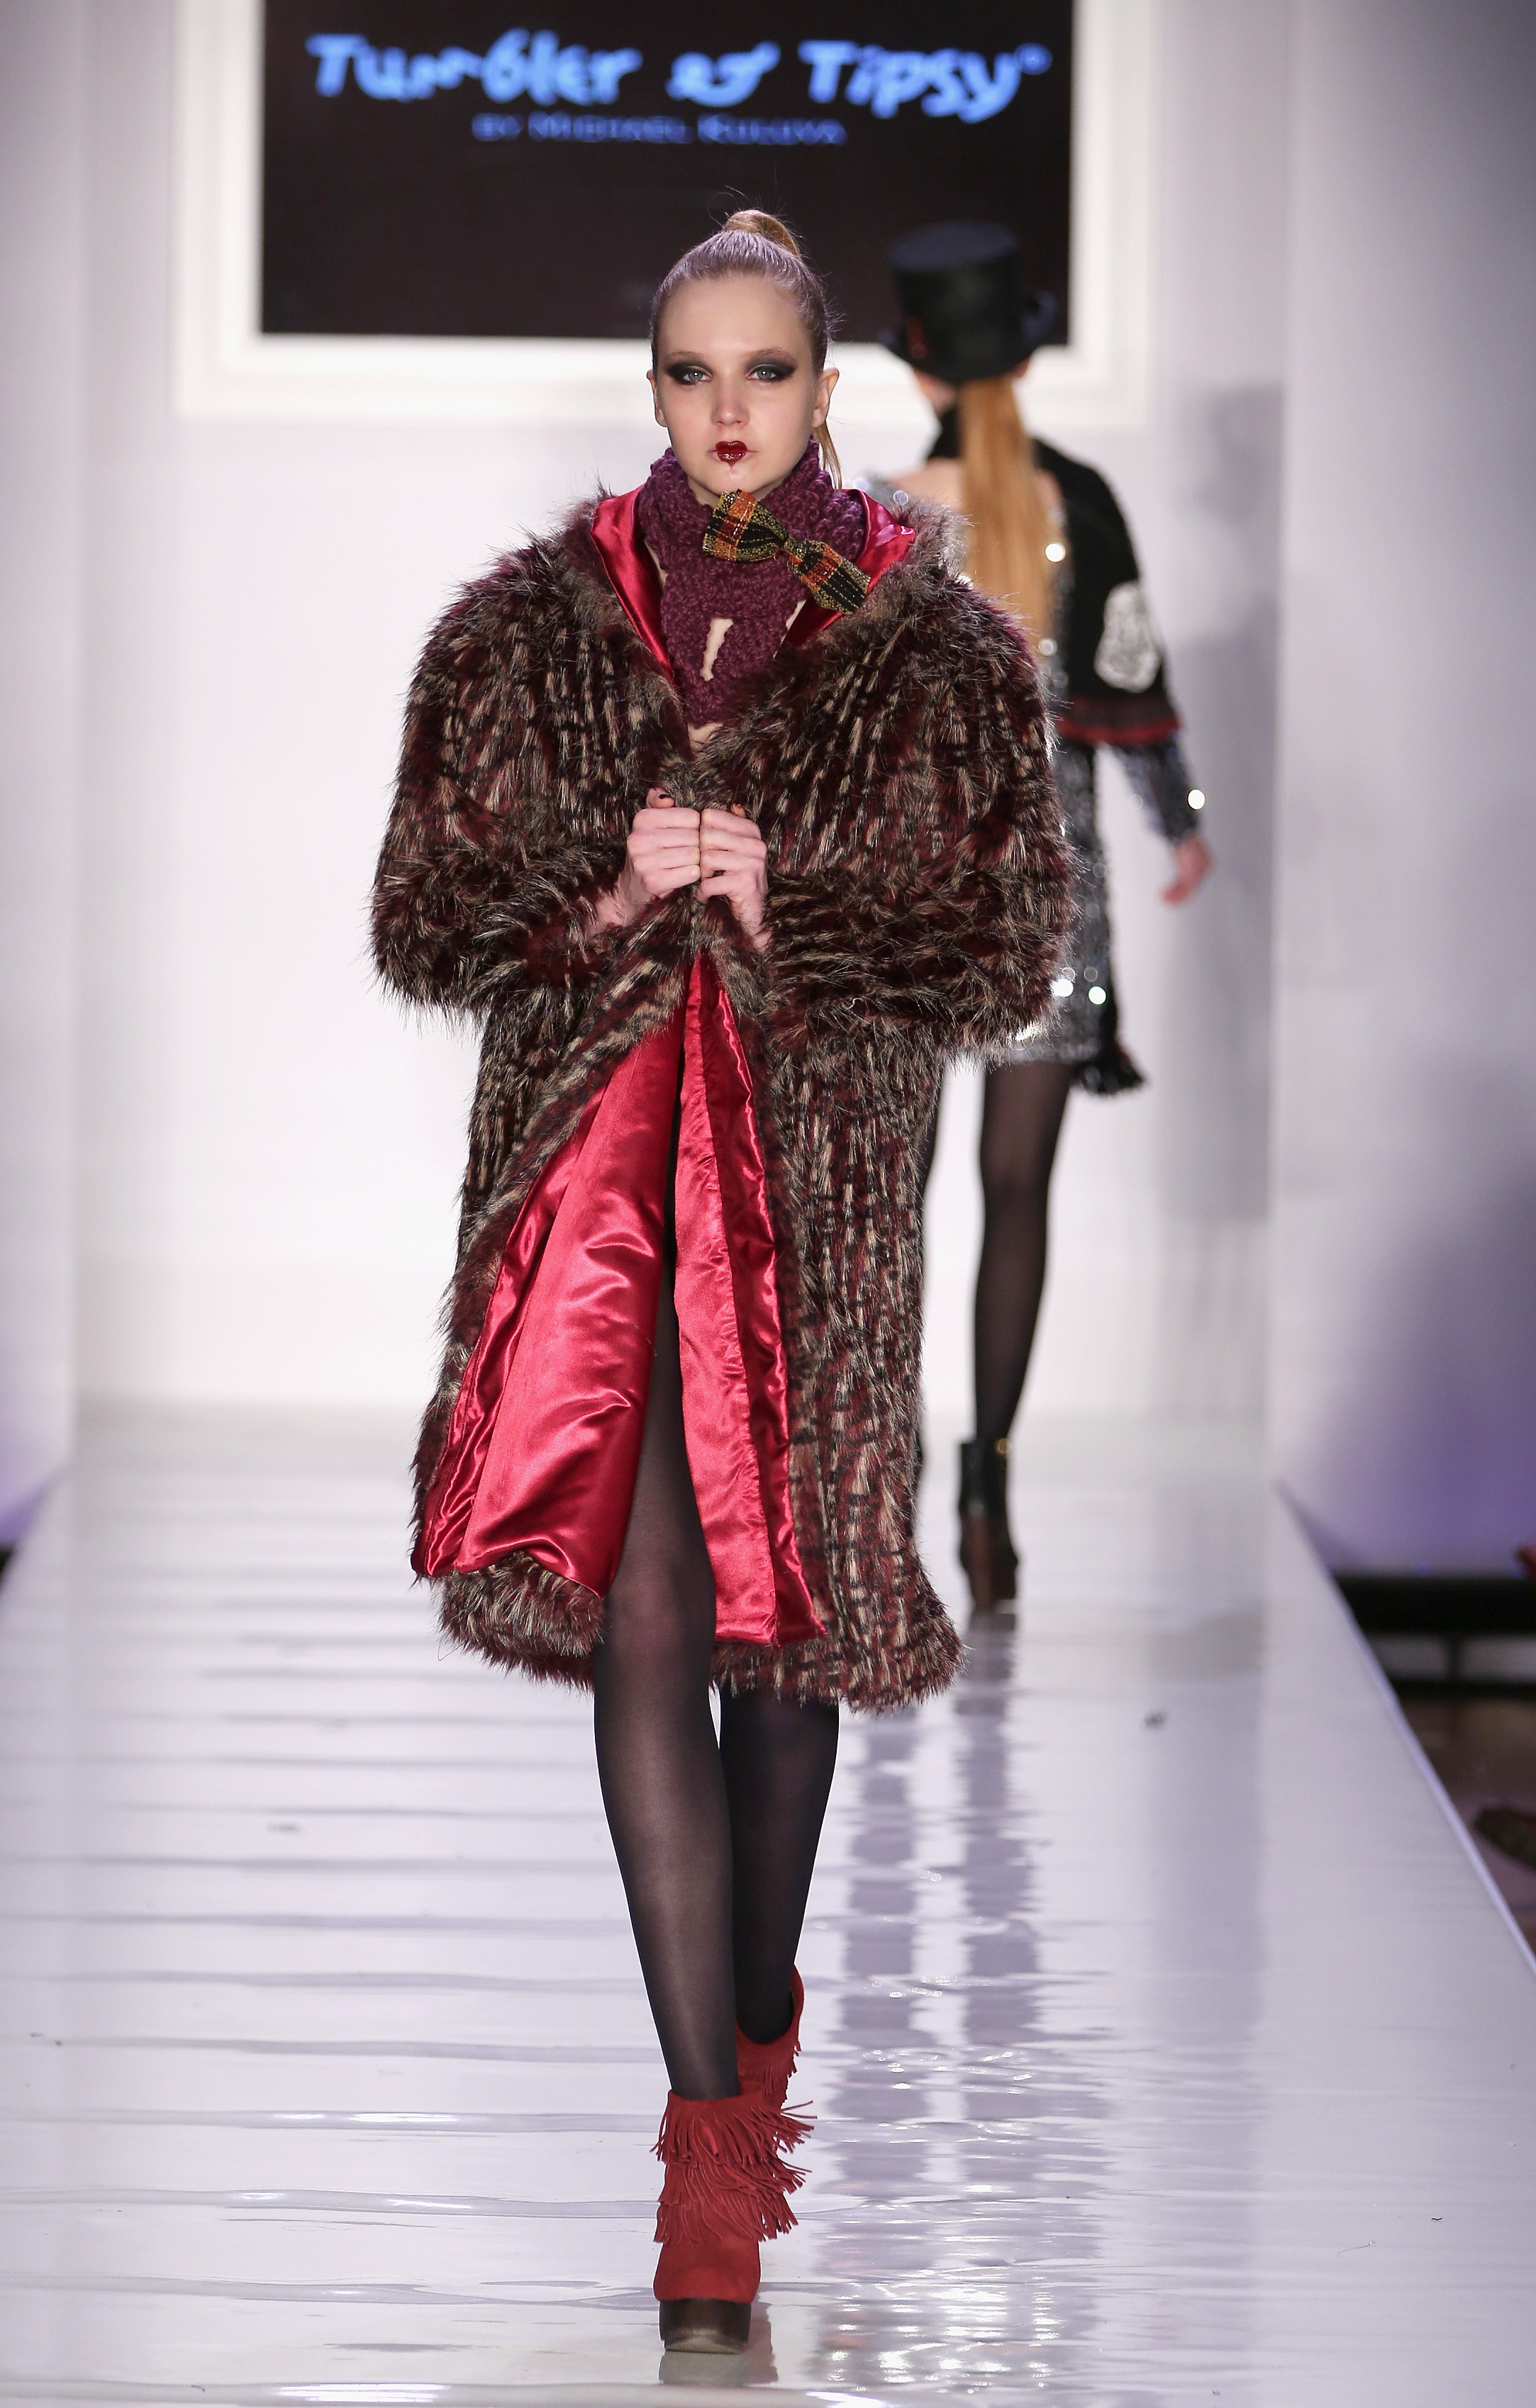 Tumbler and Tipsy New York Fashion Week Fall 2013 Look 62